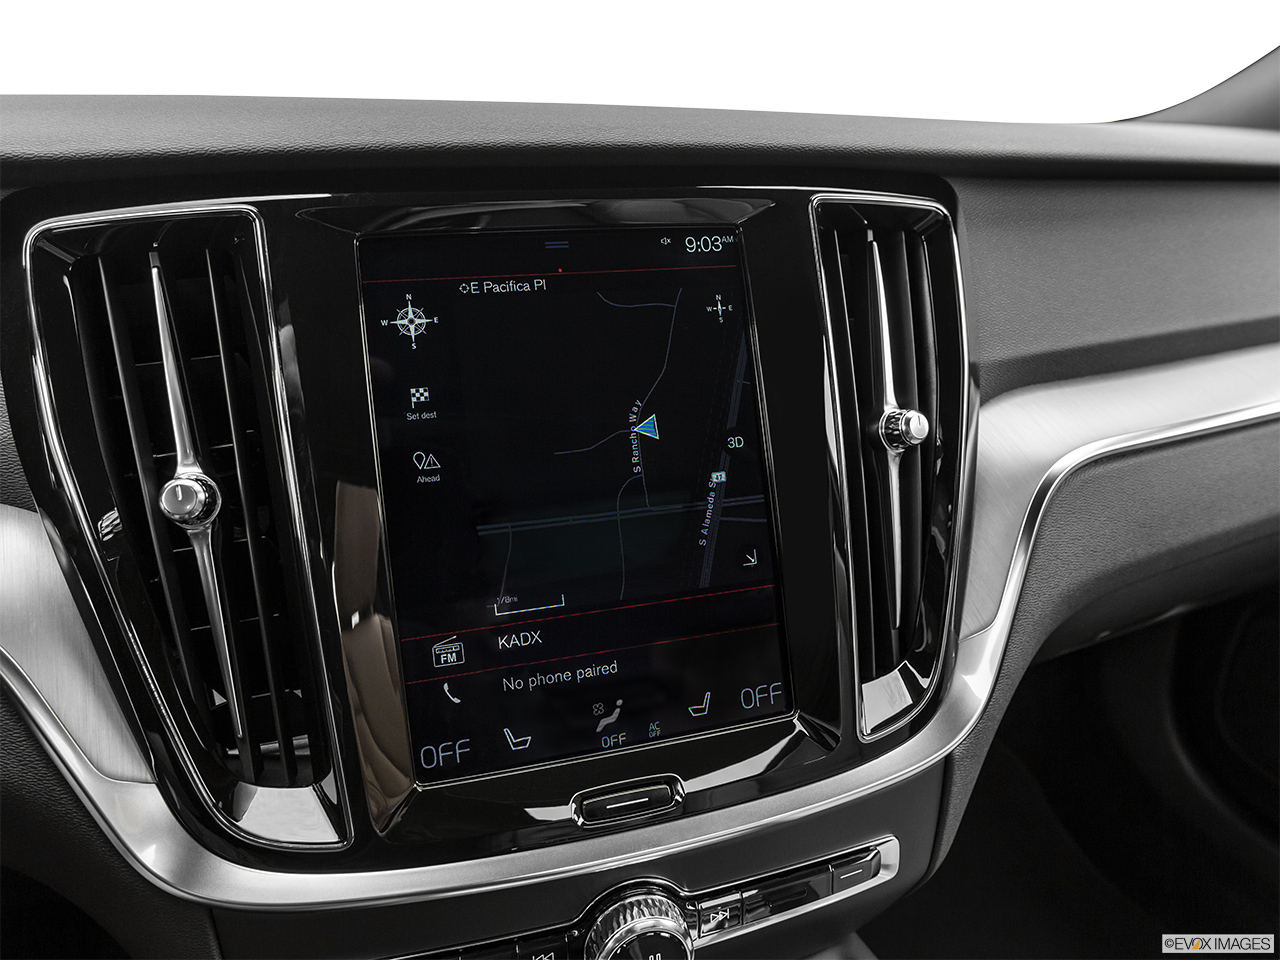 2020 Volvo V60 Cross Country T5 AWD Driver position view of navigation system.